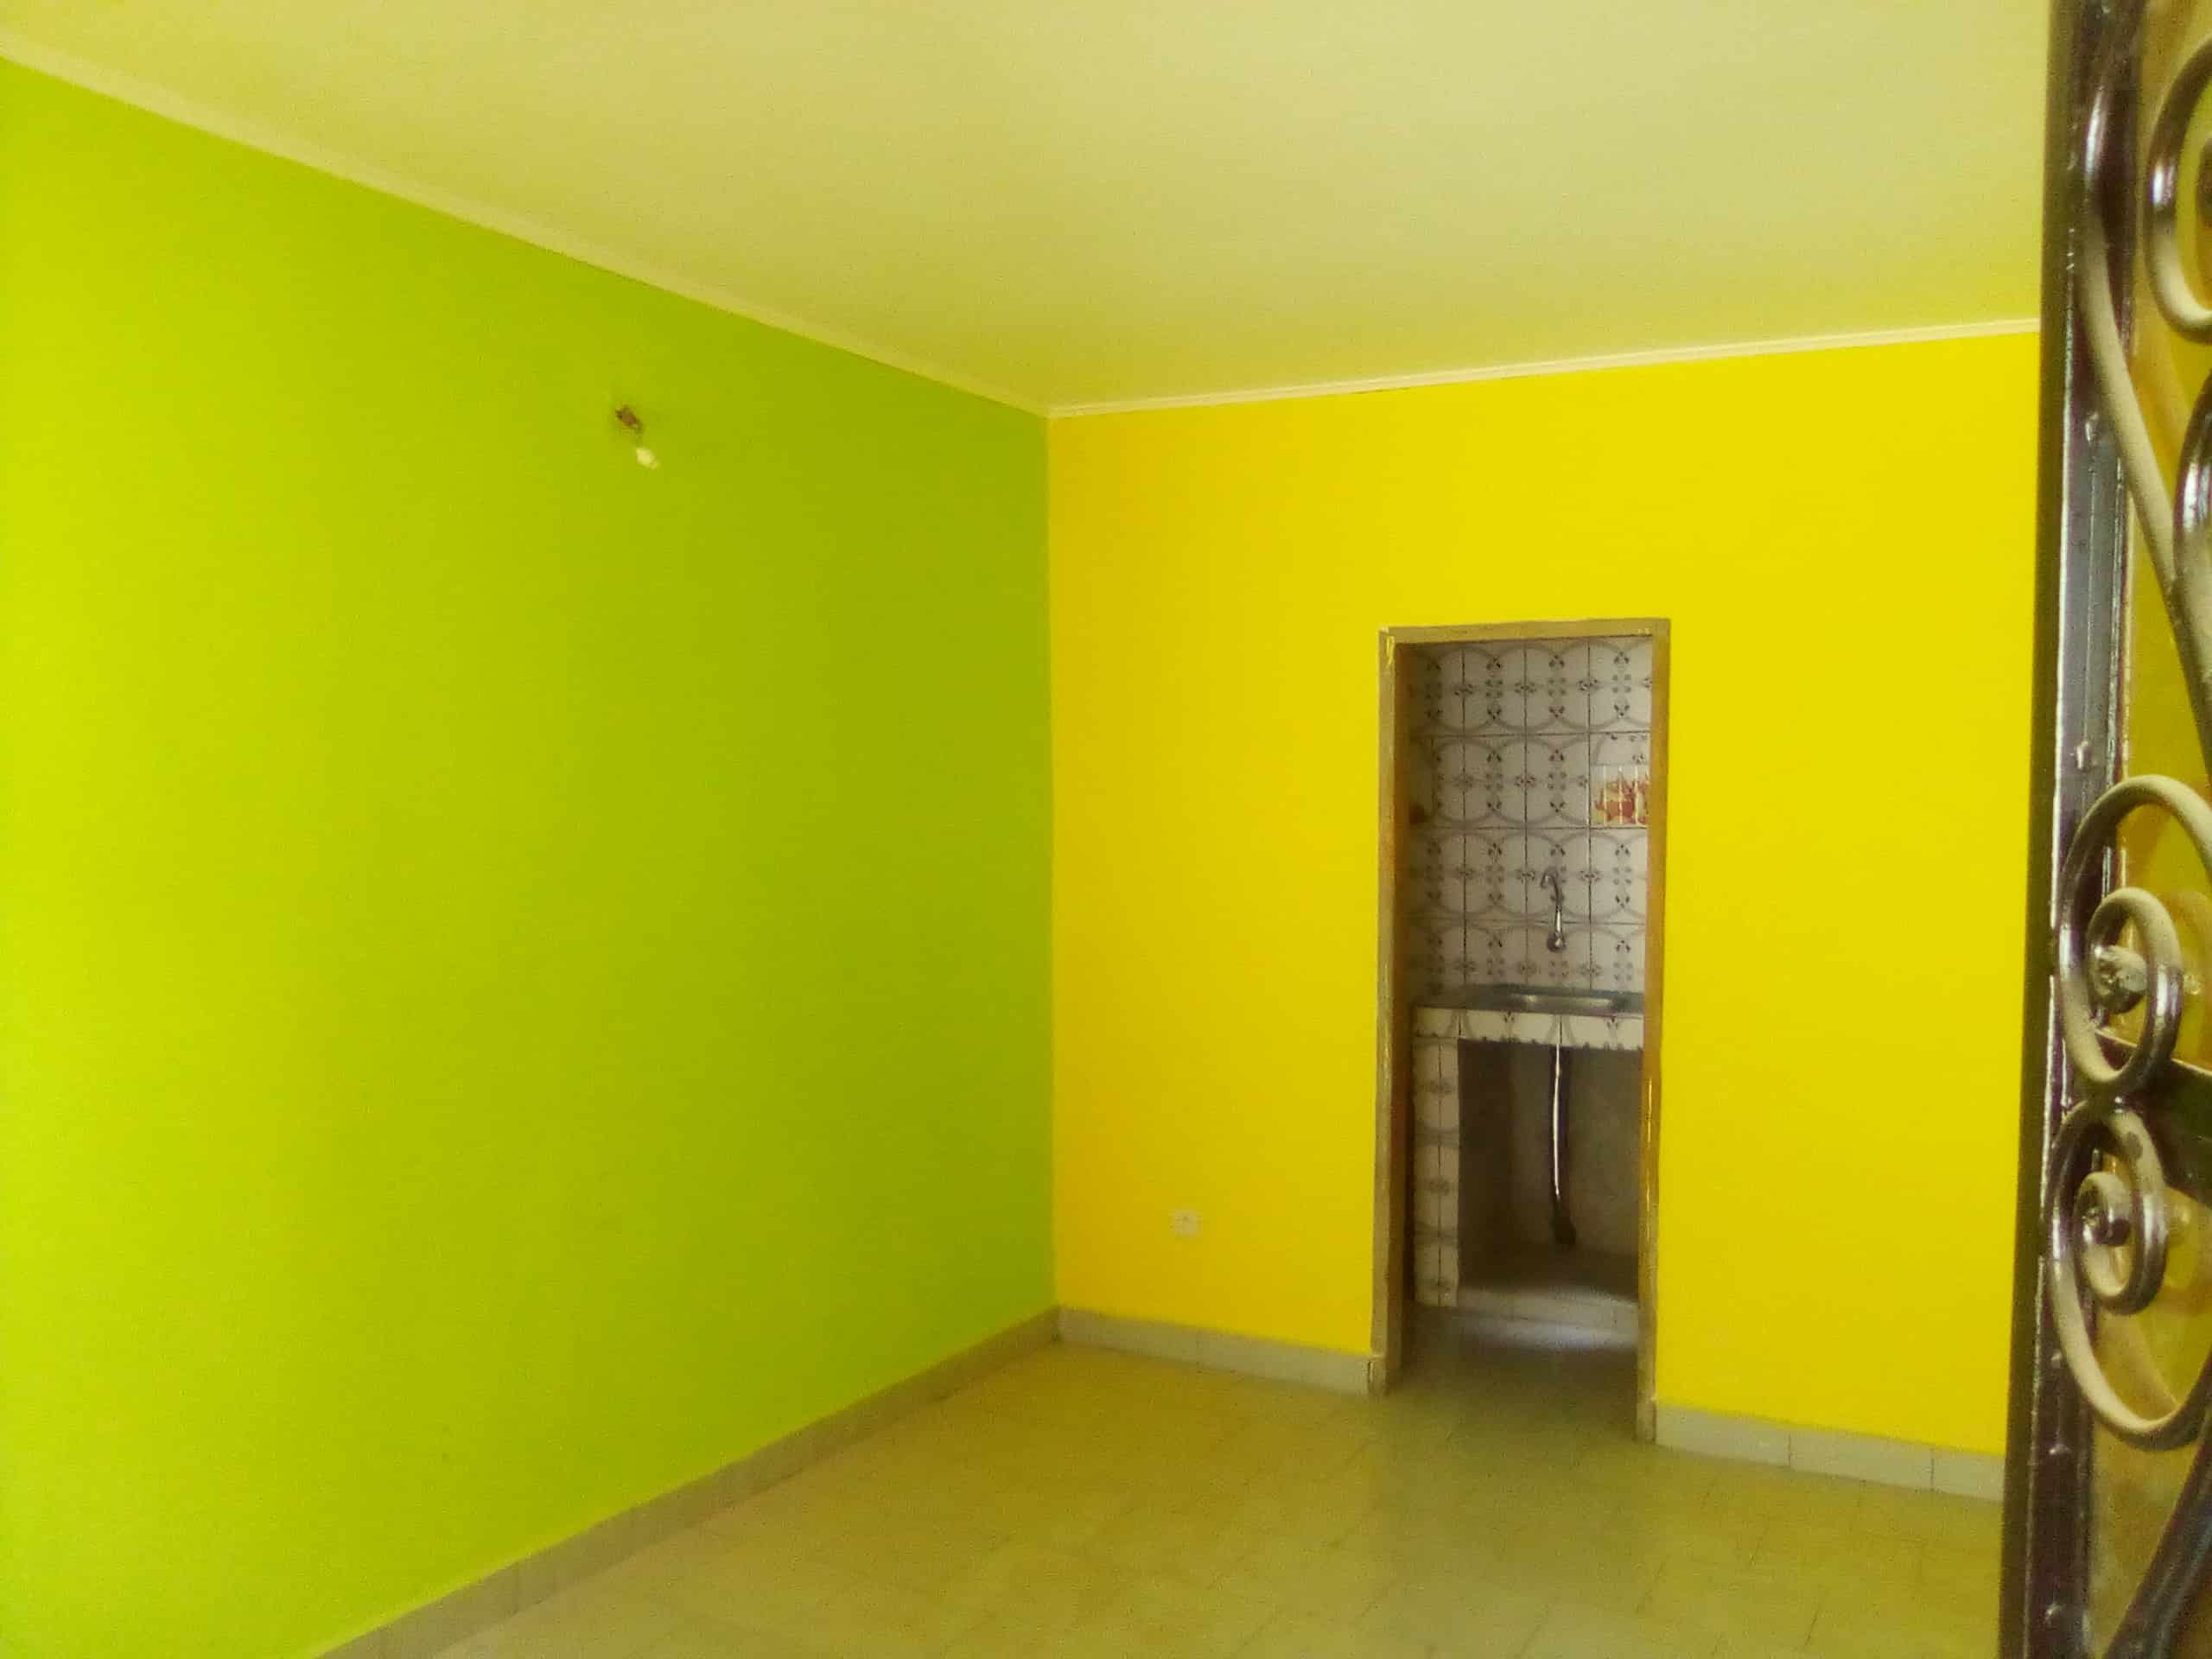 Apartment to rent - Douala, Kotto, carrefour des imeubles - 1 living room(s), 2 bedroom(s), 1 bathroom(s) - 60 000 FCFA / month